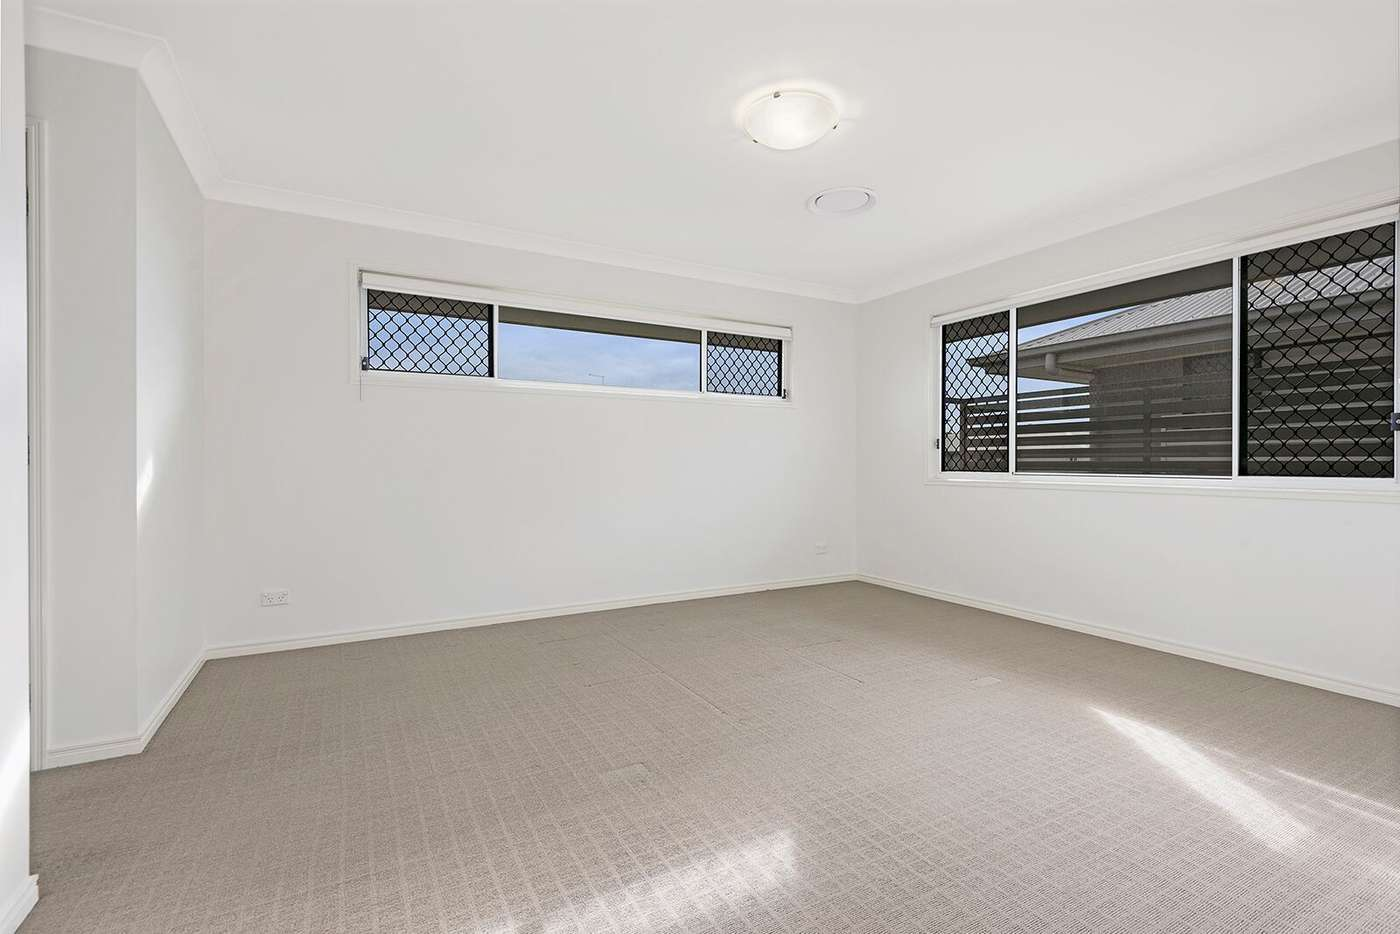 Seventh view of Homely house listing, 41 Lilley Street, Hendra QLD 4011